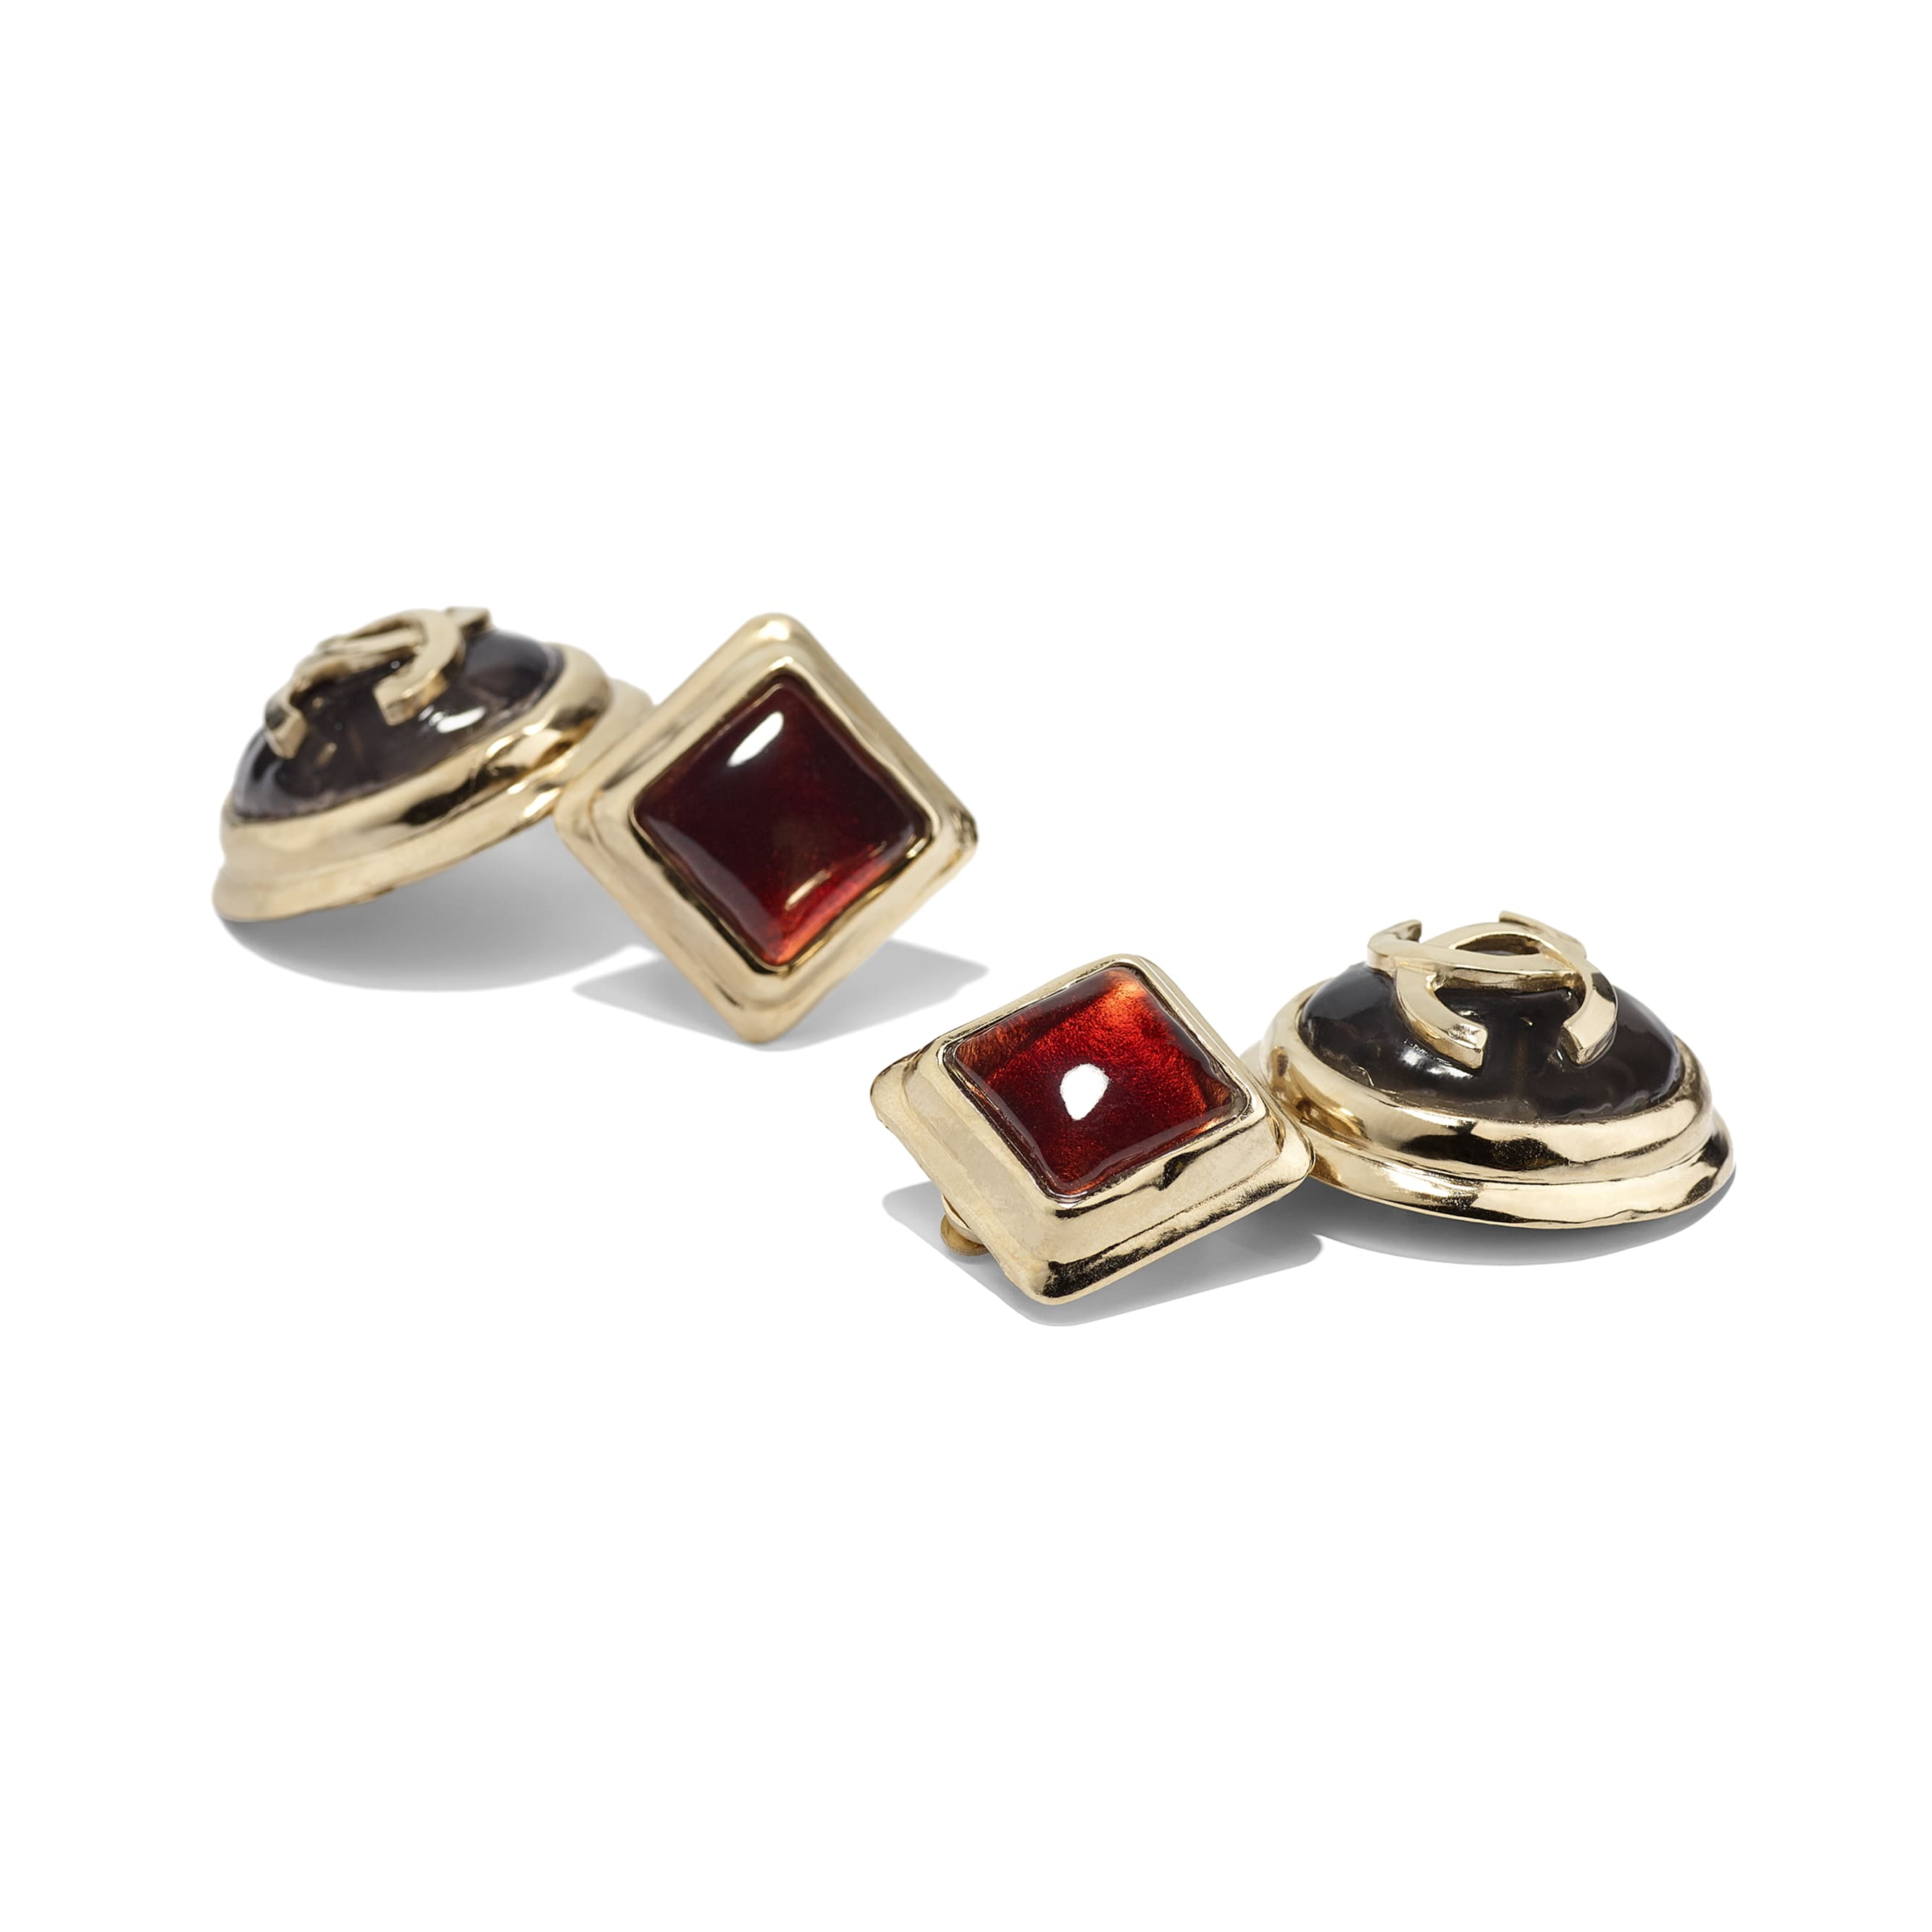 Clip-On Earrings - Gold, Black & Burgundy - Metal & Resin - Alternative view - see standard sized version